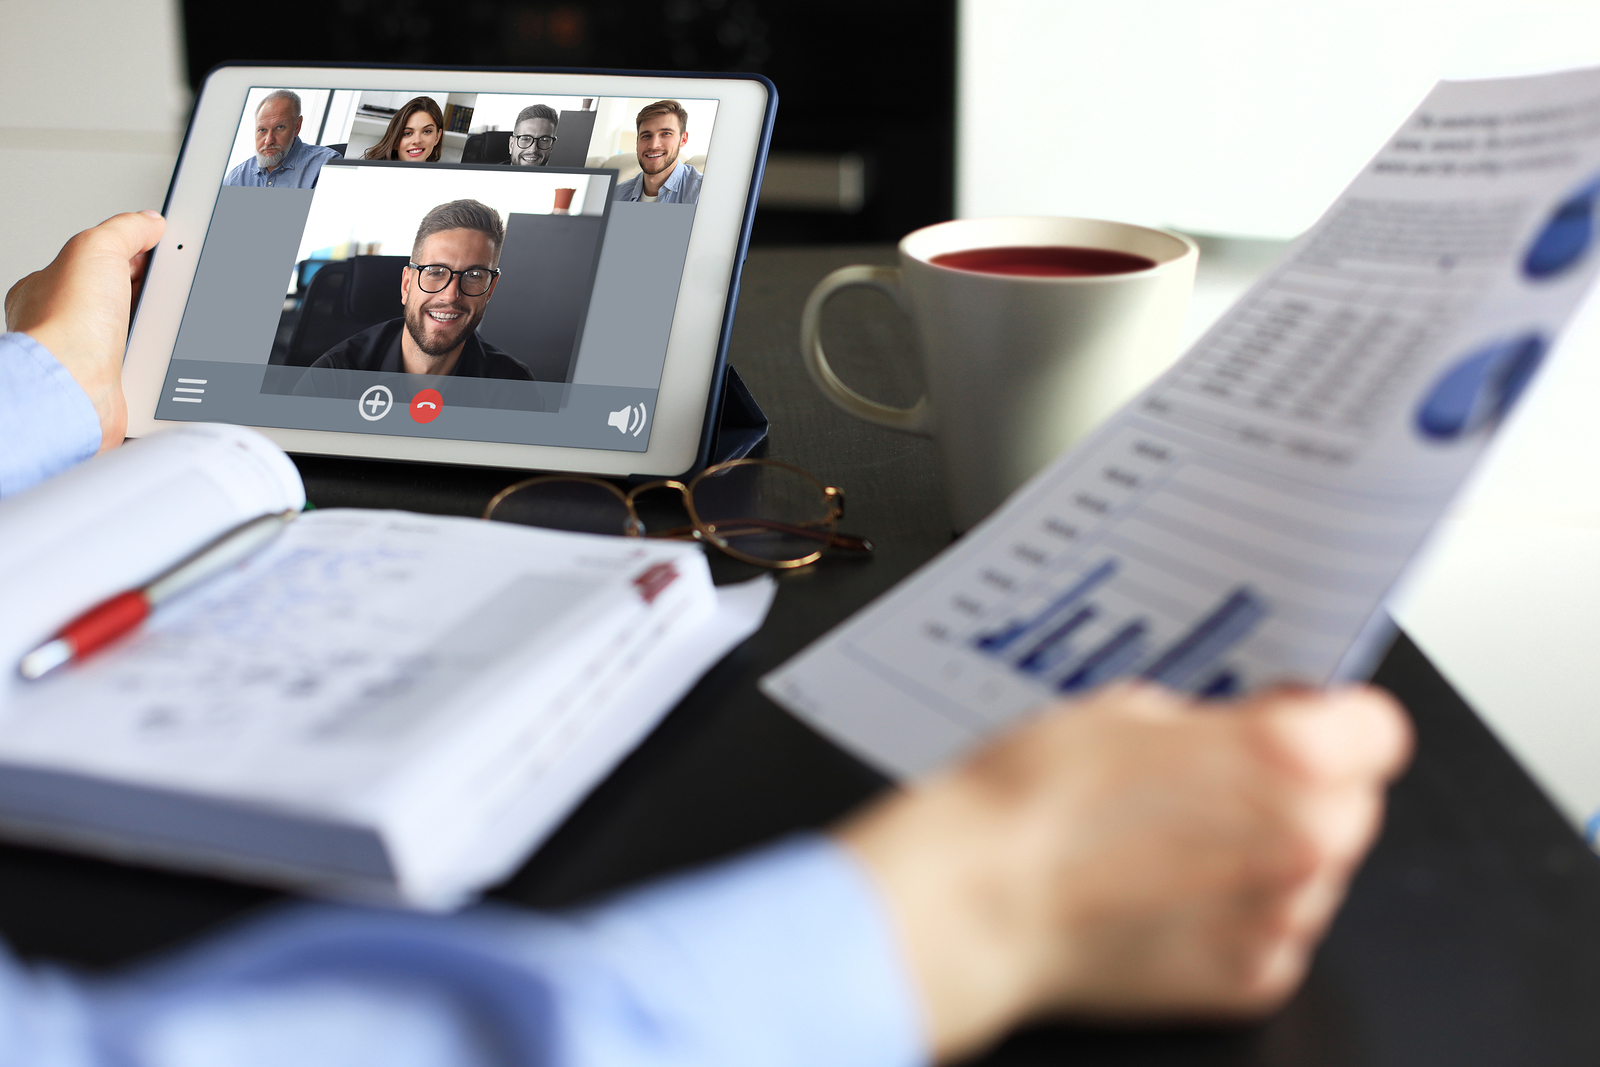 Networking Business woman talking to her colleagues in video conference. Business team working from home using digital tablet.